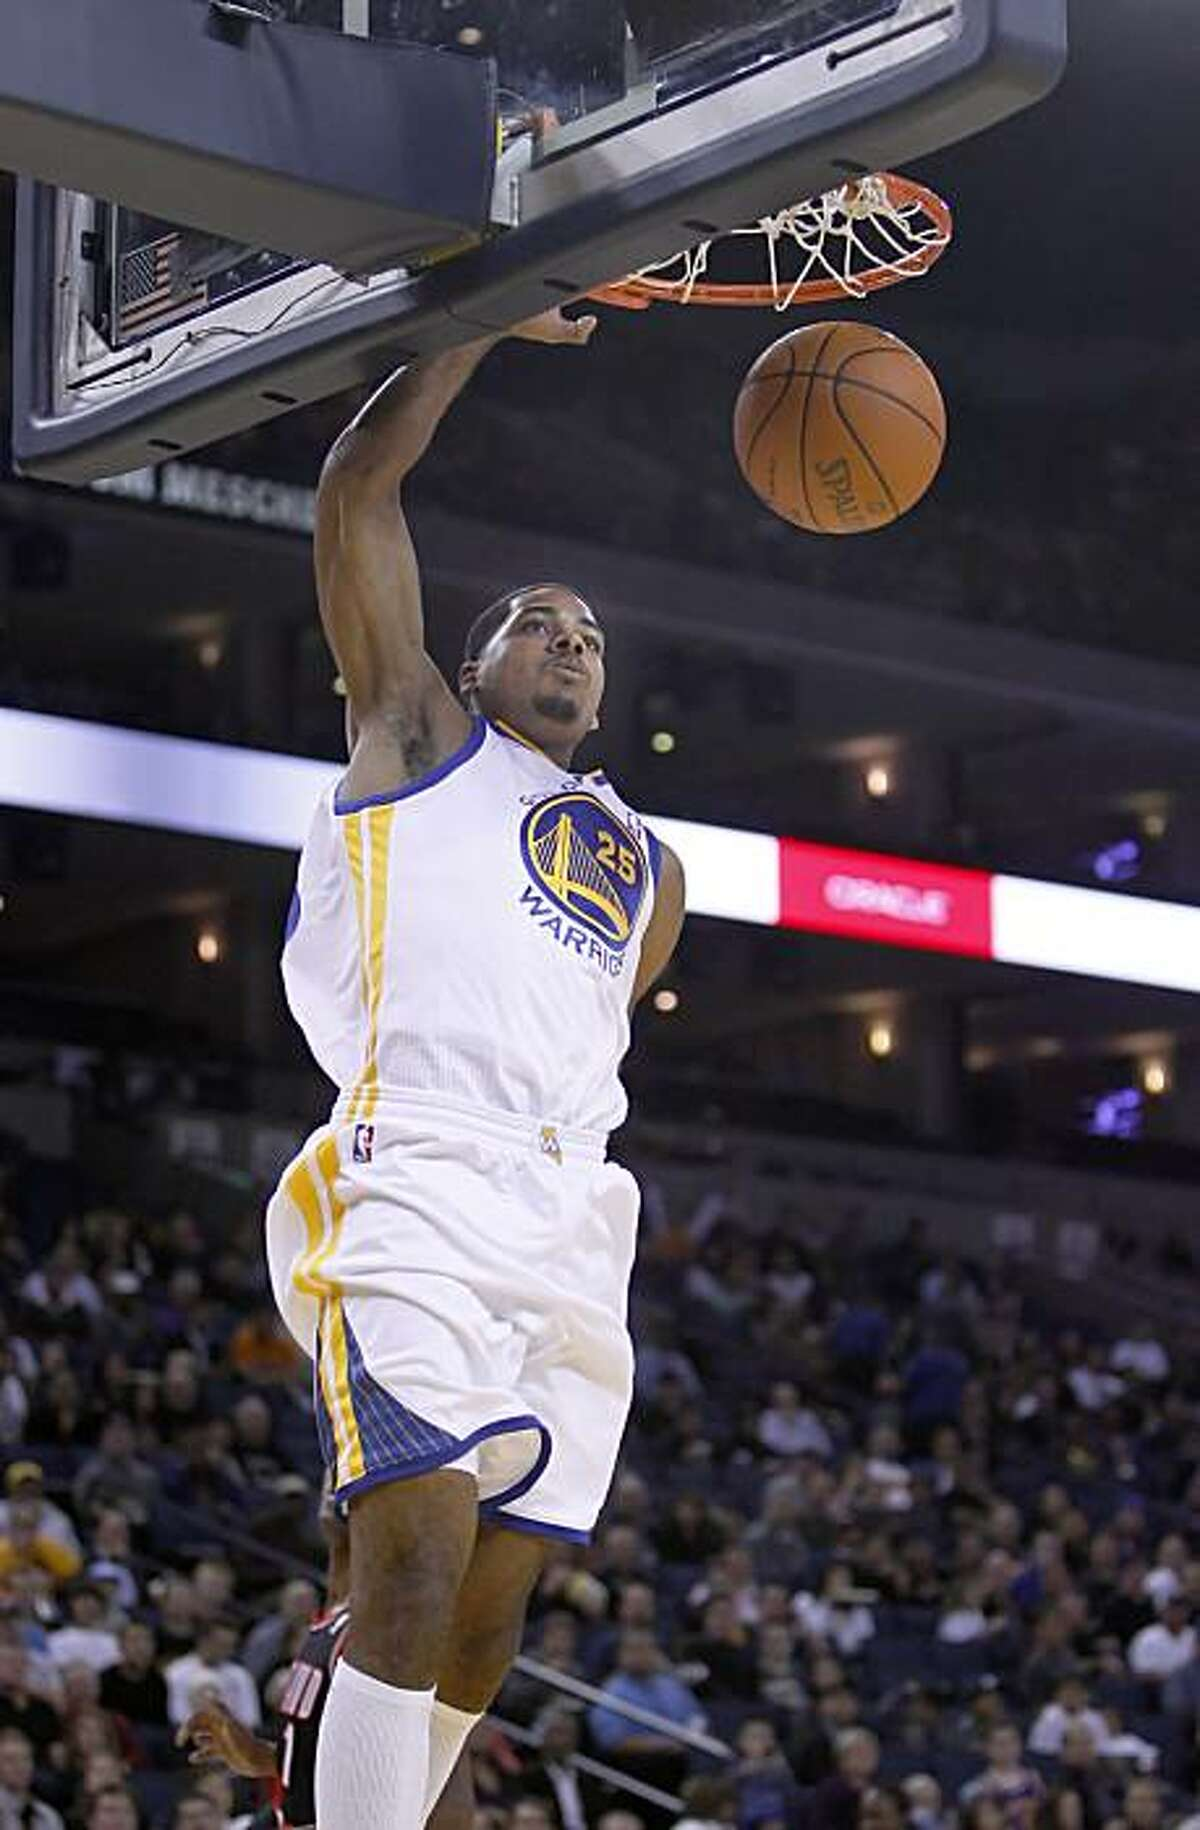 Golden State Warriors' forward, Rodney Carney dunks in game action against the Portland Trail Blazer on Monday, October 18, 2010.